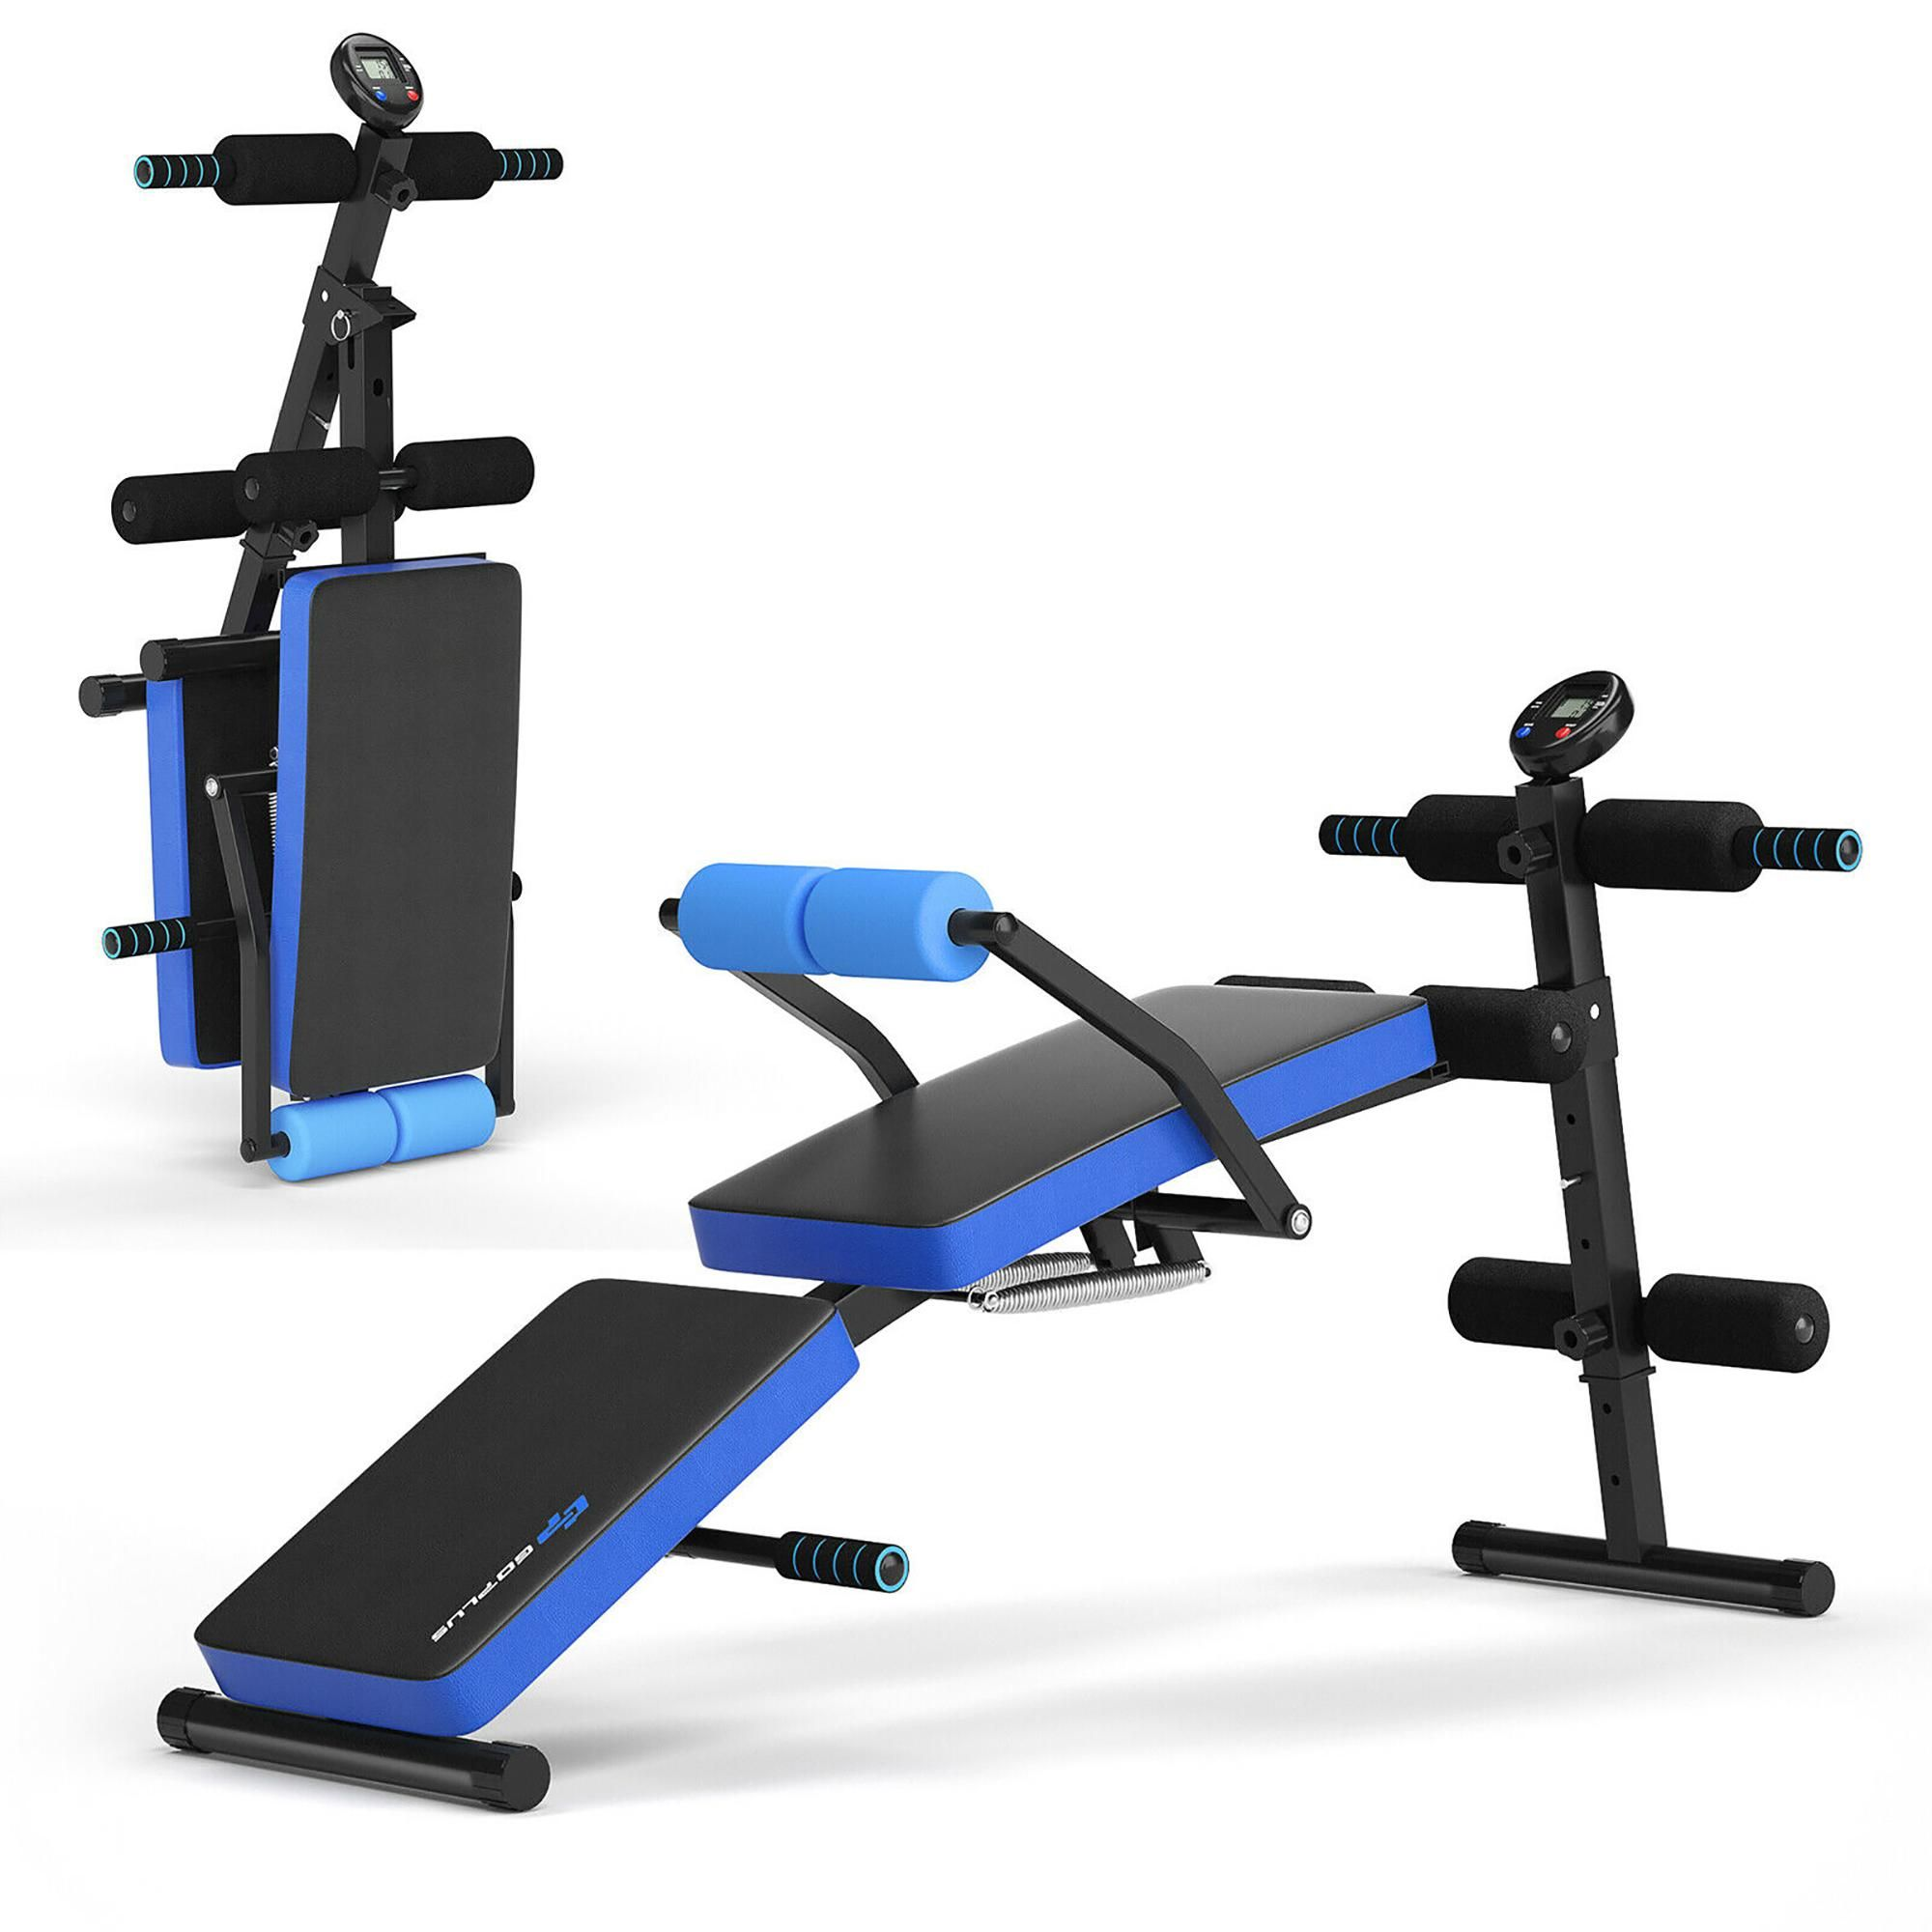 Goplus Multi-Functional Foldable Weight Bench Adjustable Sit-up Board w/ Monitor Blue